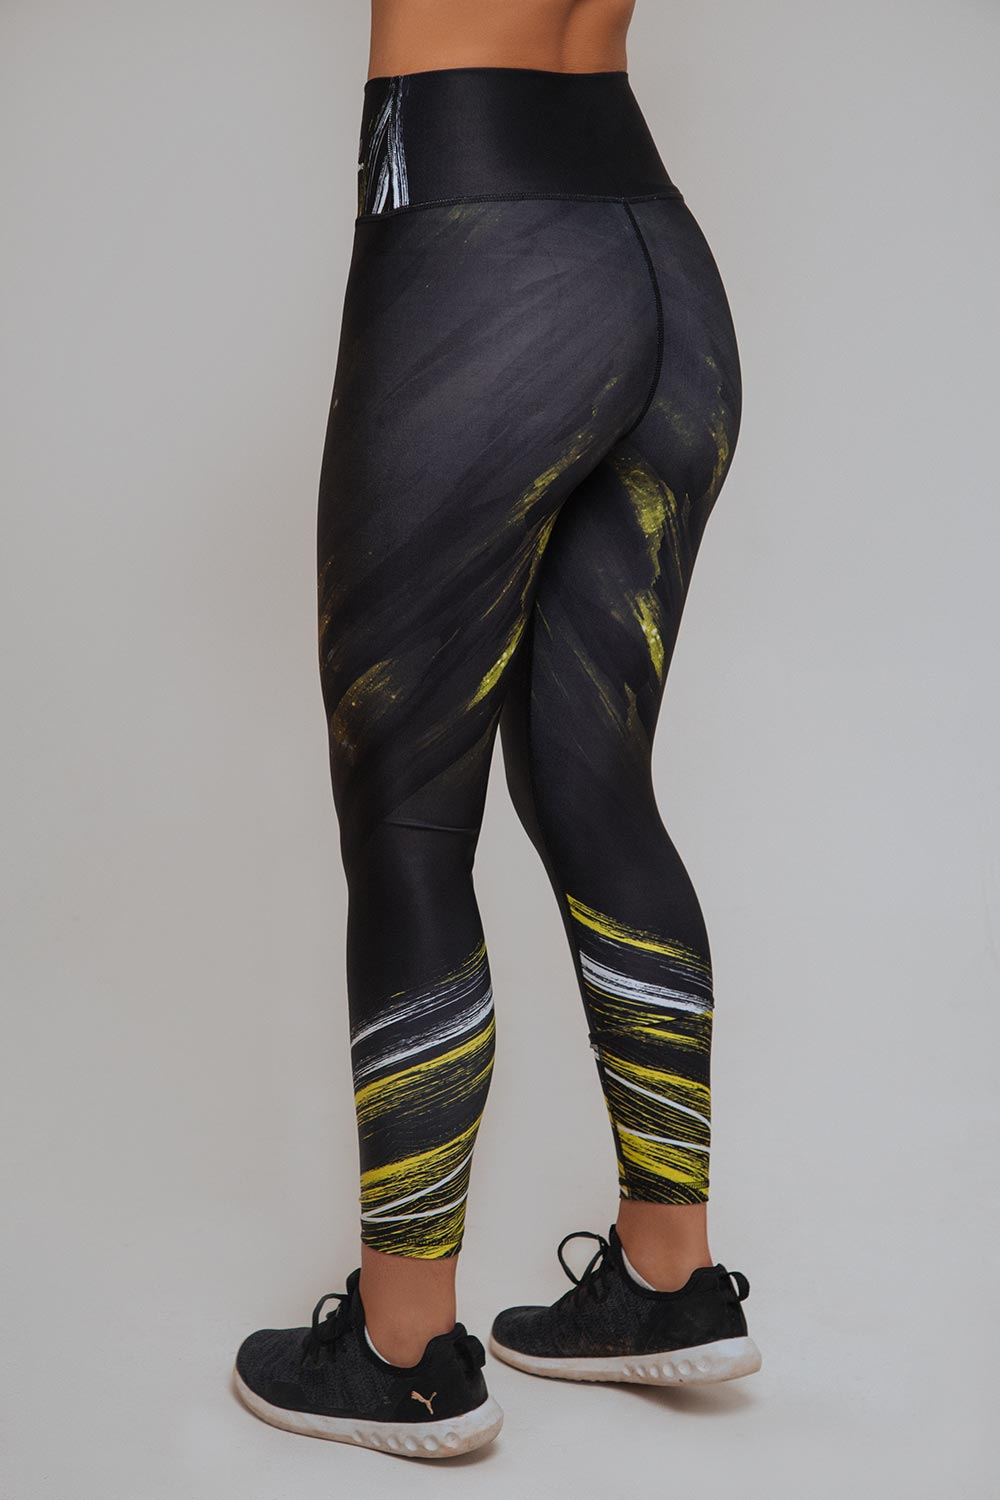 STAR DUST HIGH RISE LEGGING